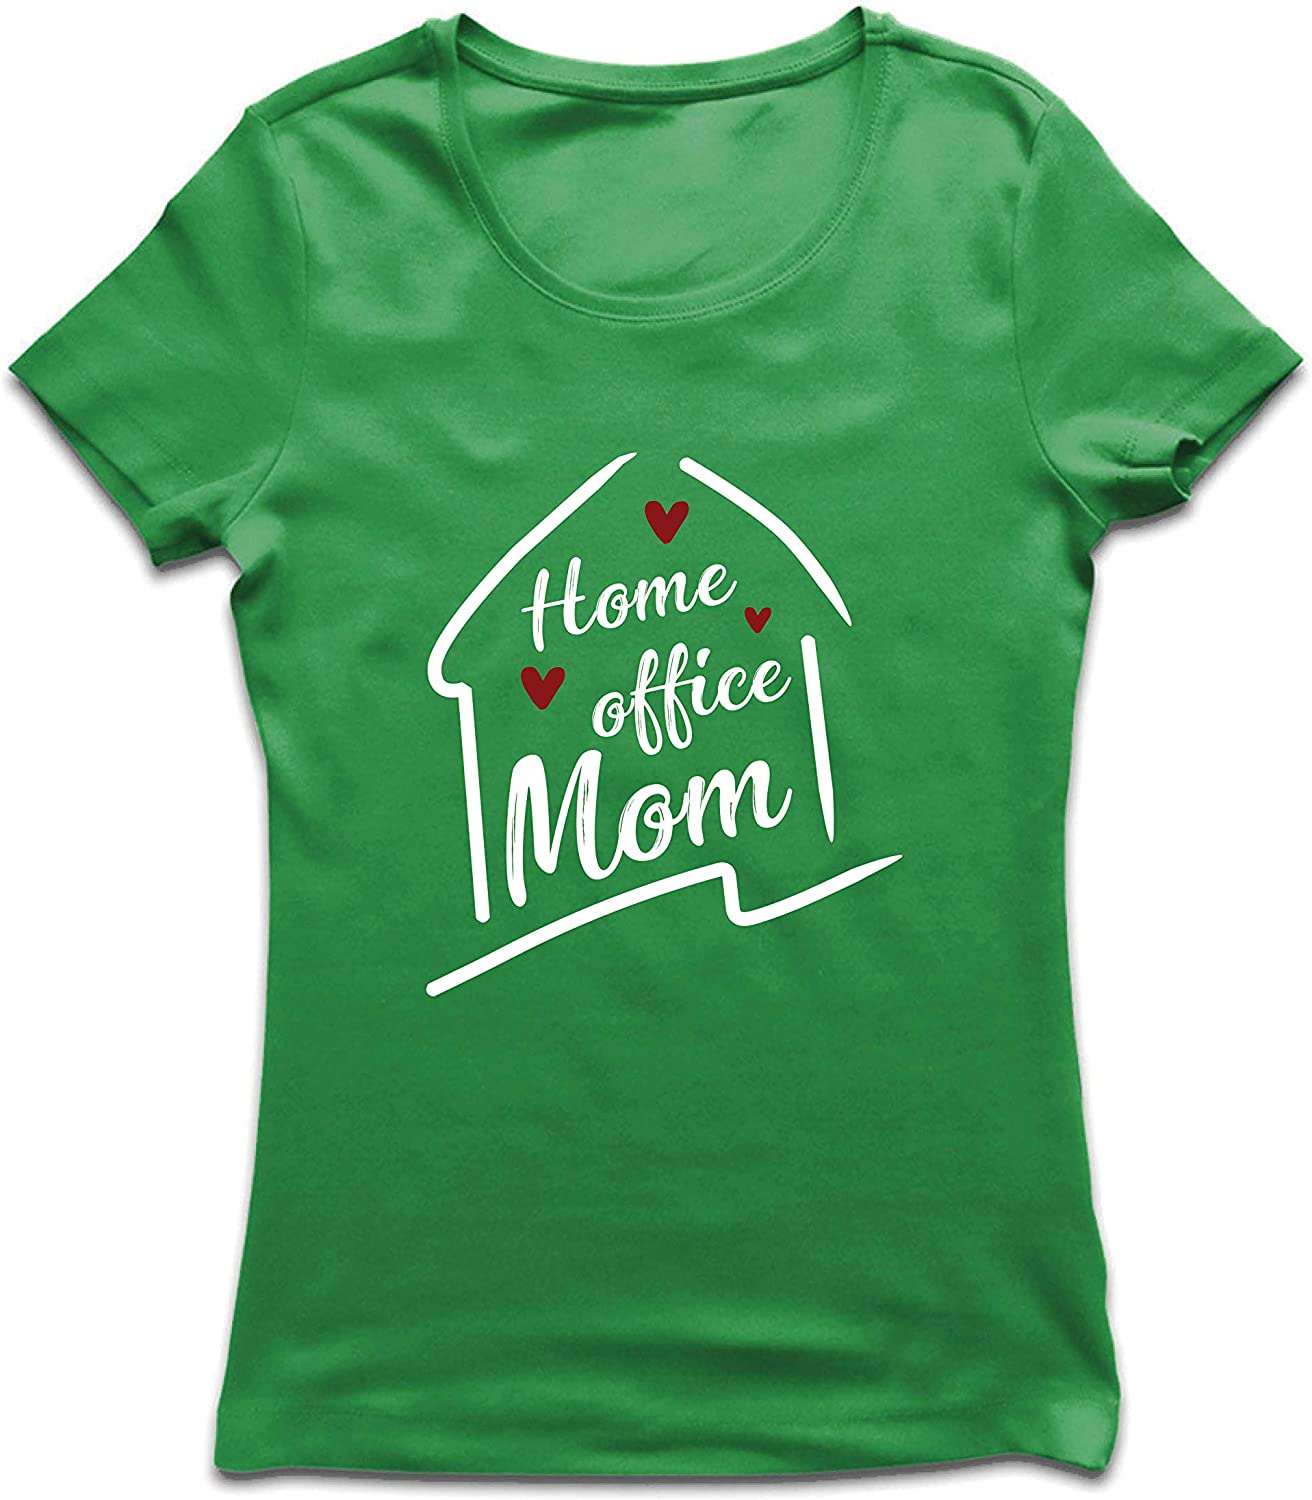 lepni.me Women's T-Shirt Home Office Mom Outfit Social Distancing Work from Home